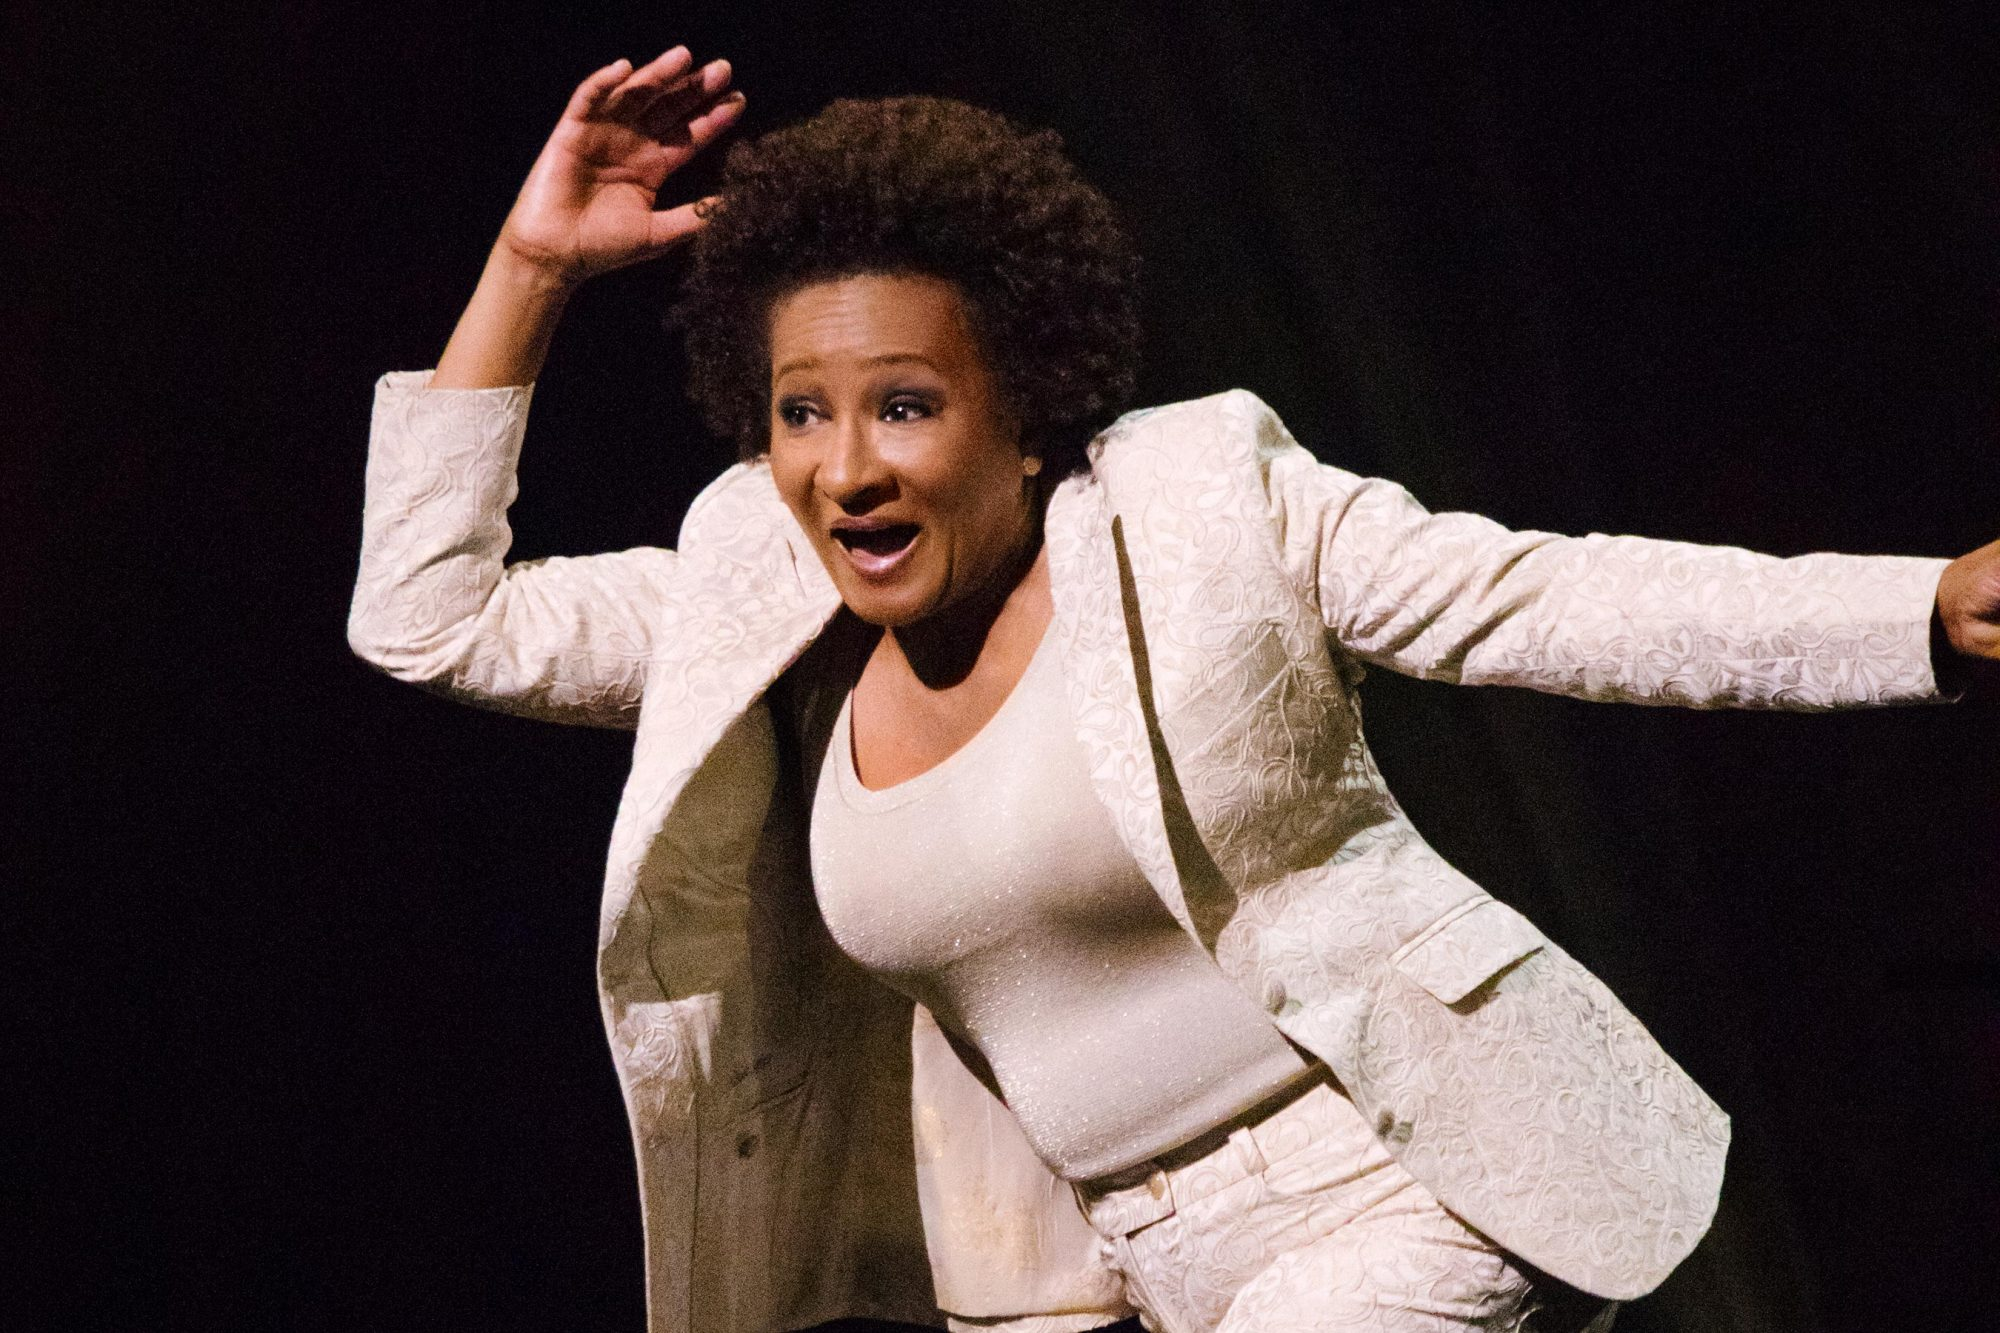 WANDA SYKES STAND-UP SPECIAL